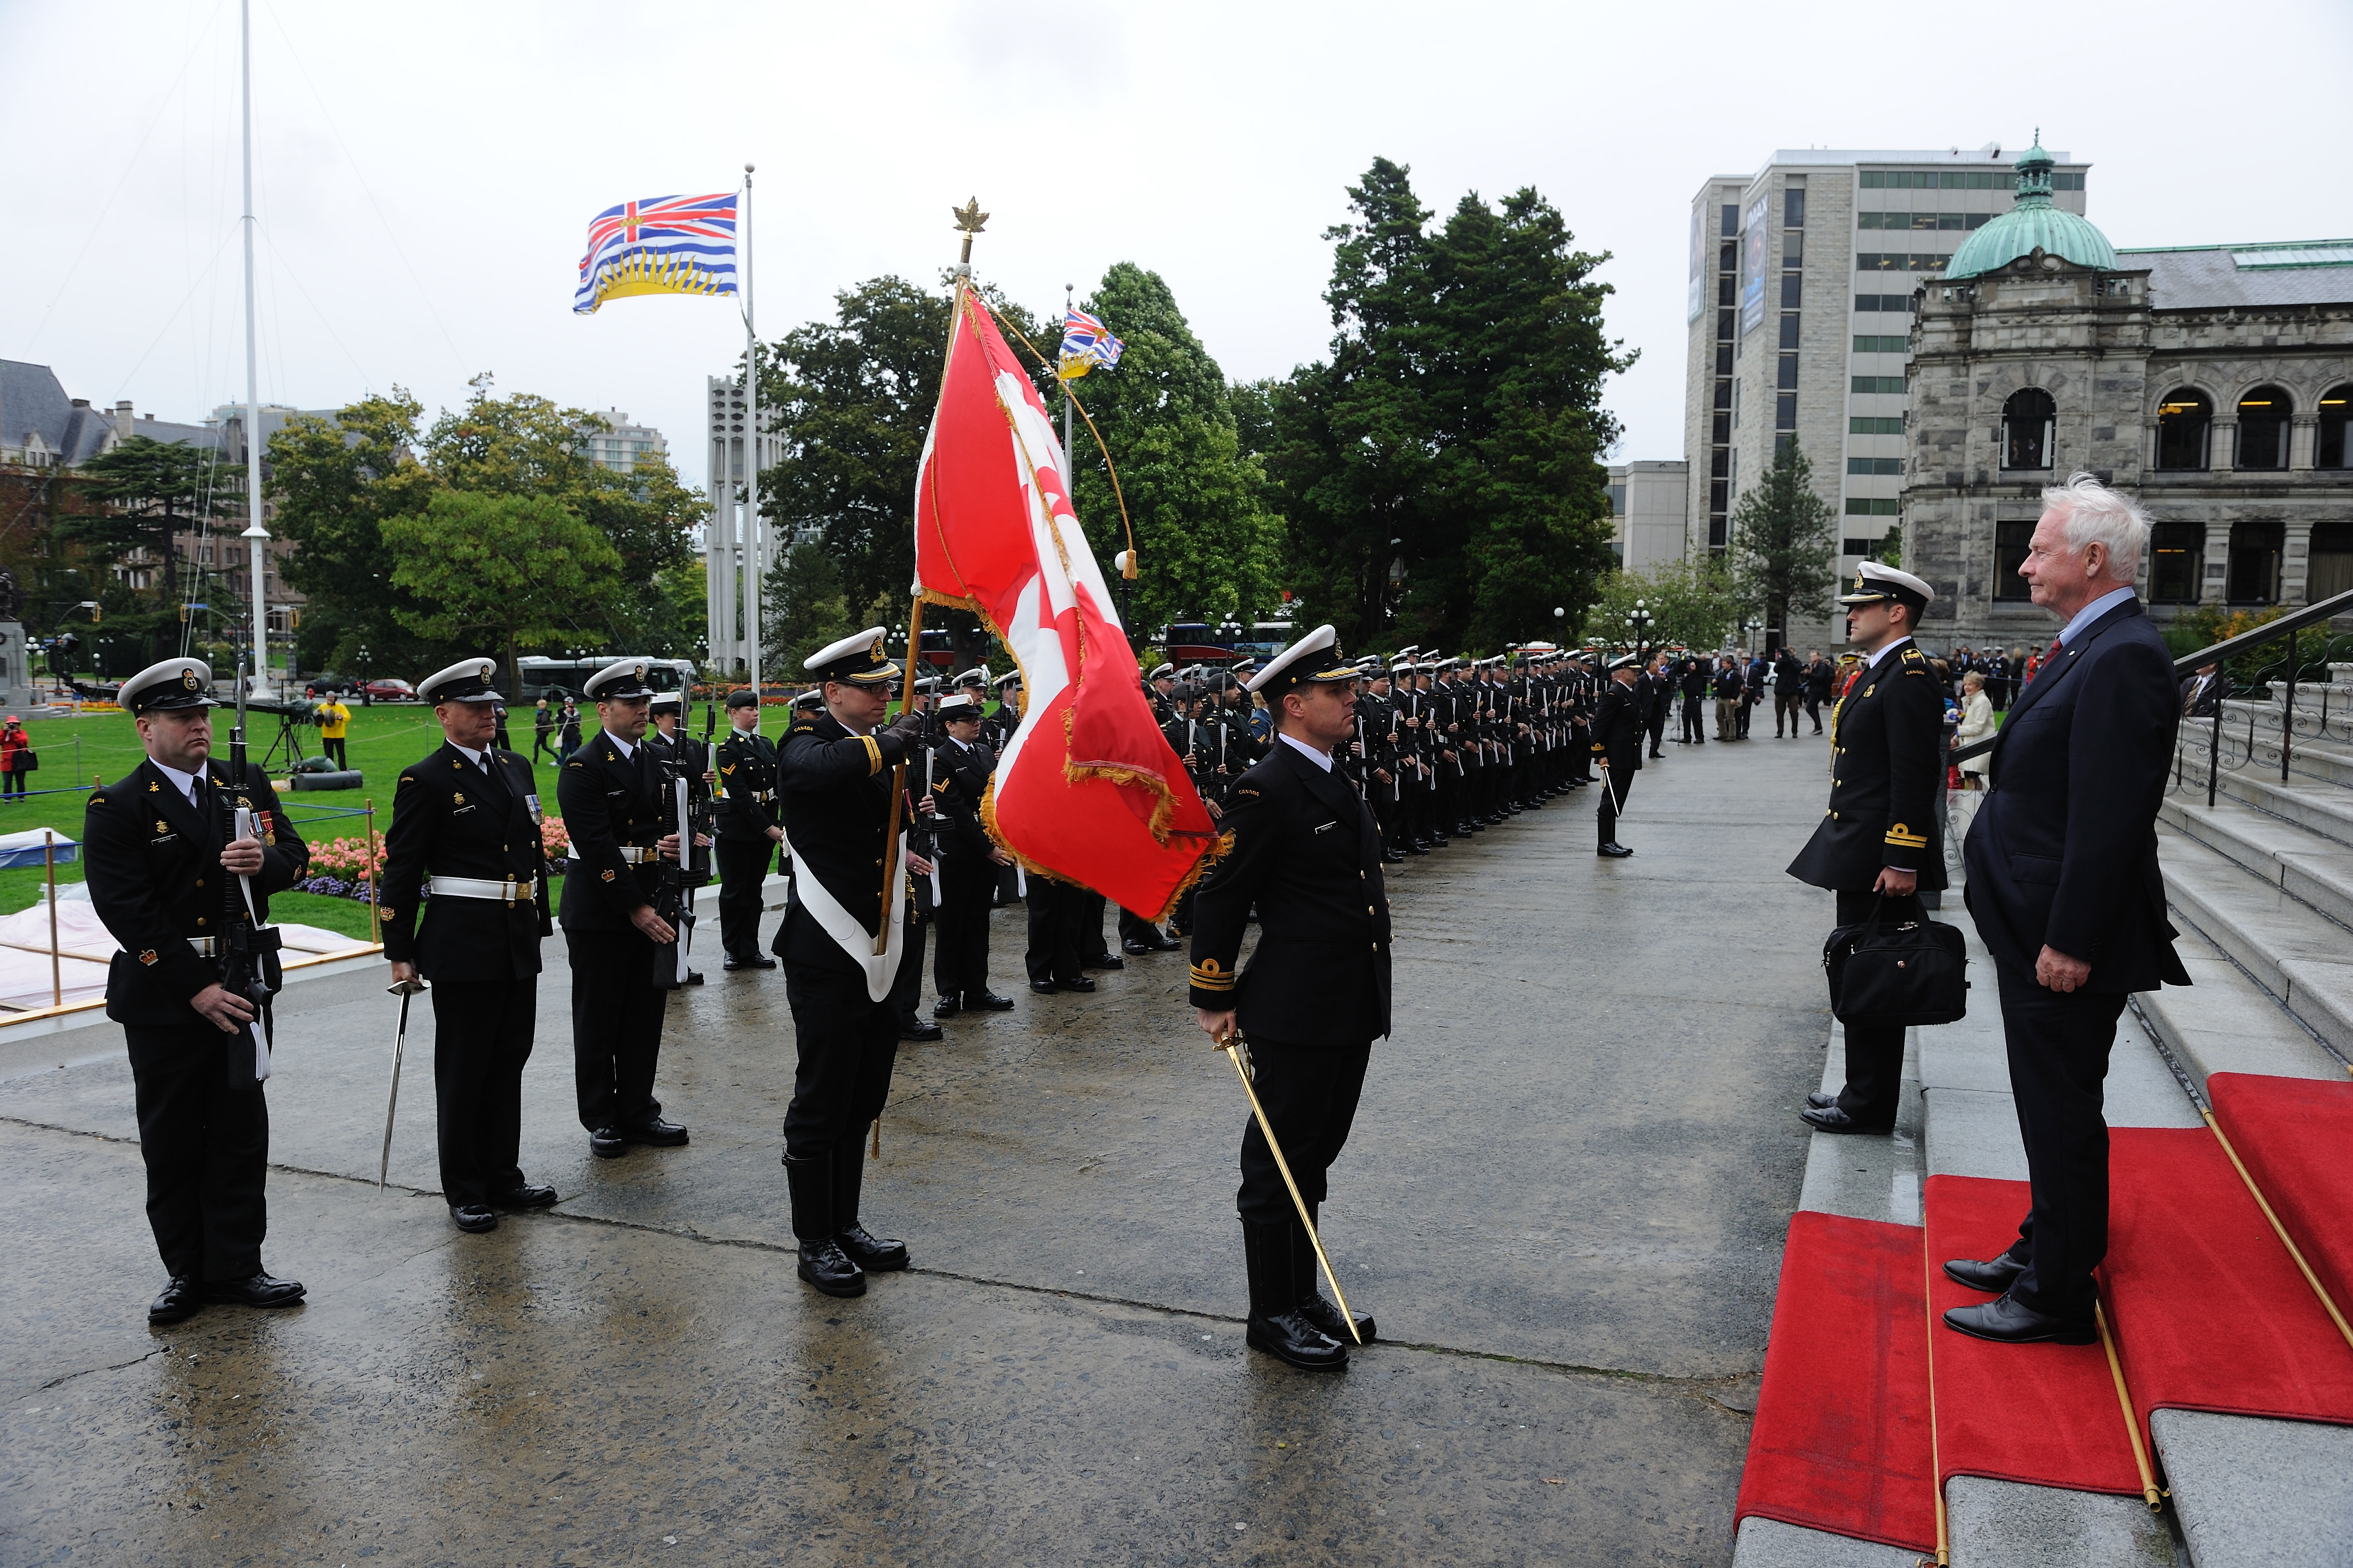 During the official welcoming ceremony, the Governor General was presented with full military honours.